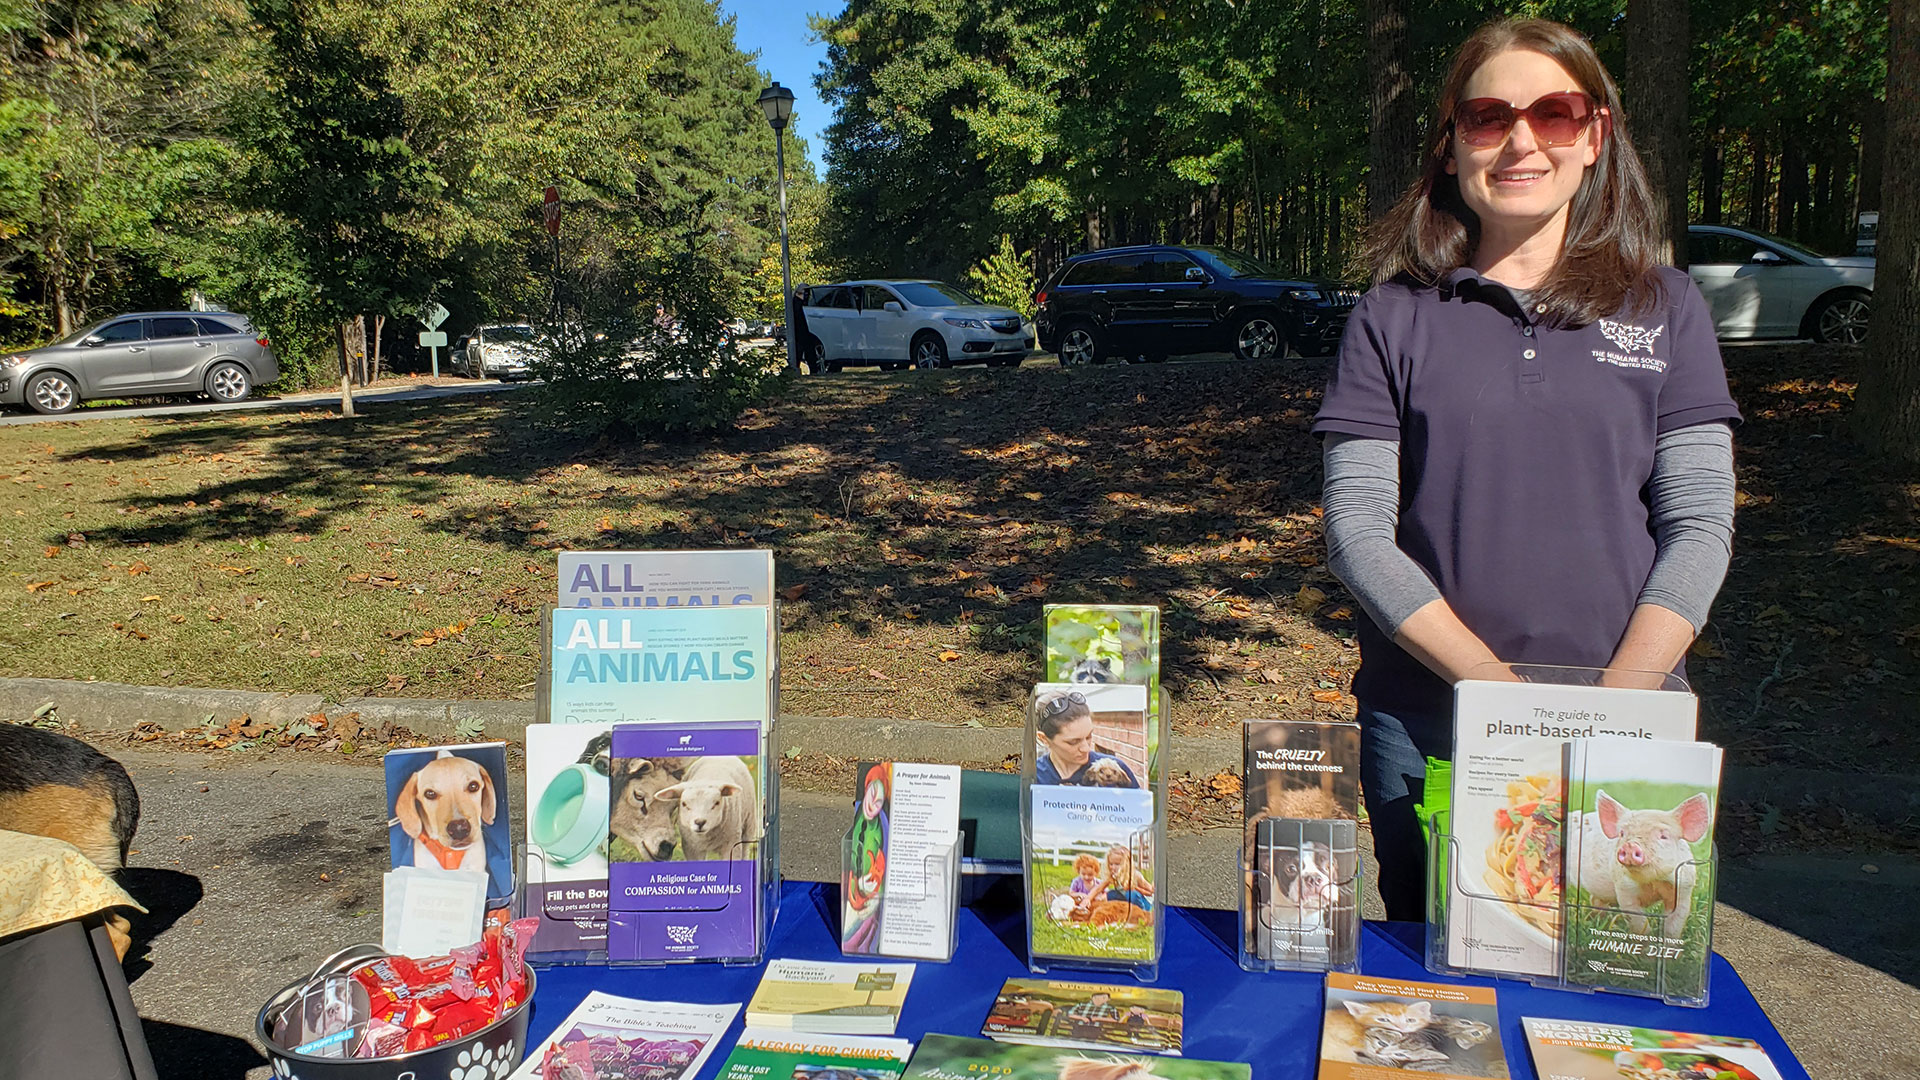 Lisa, a volunteer, stands at a table with animal welfare materials